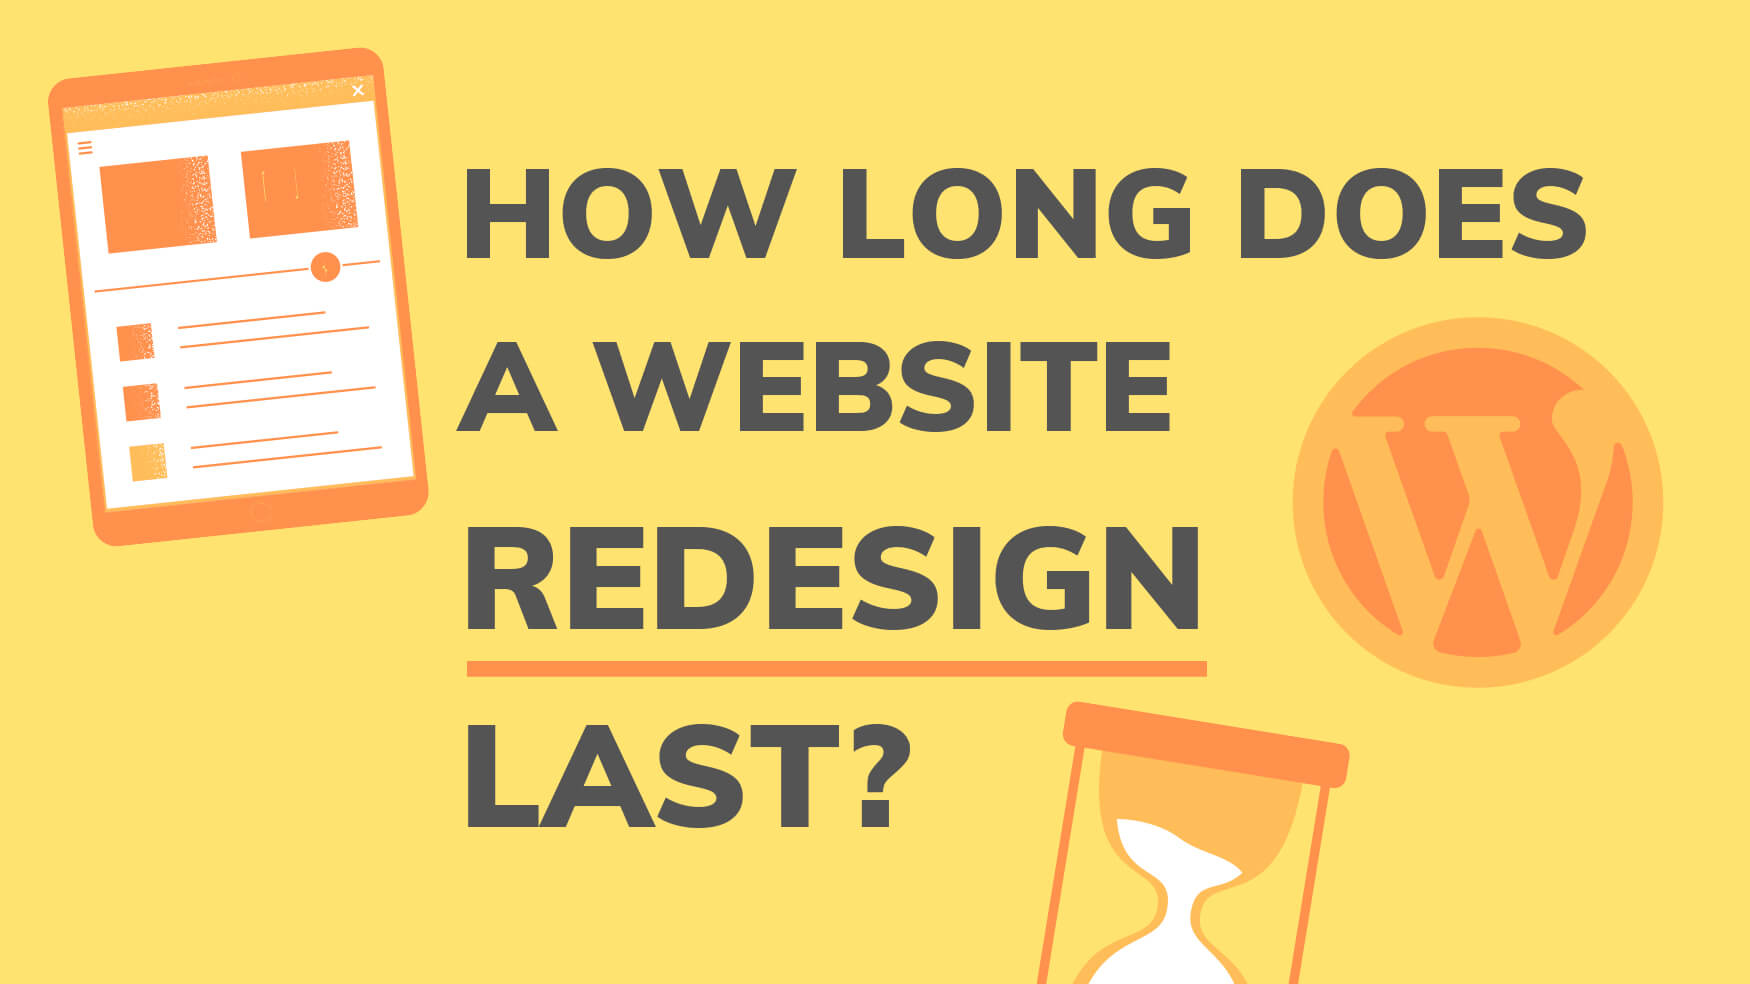 how long does a website redesign last